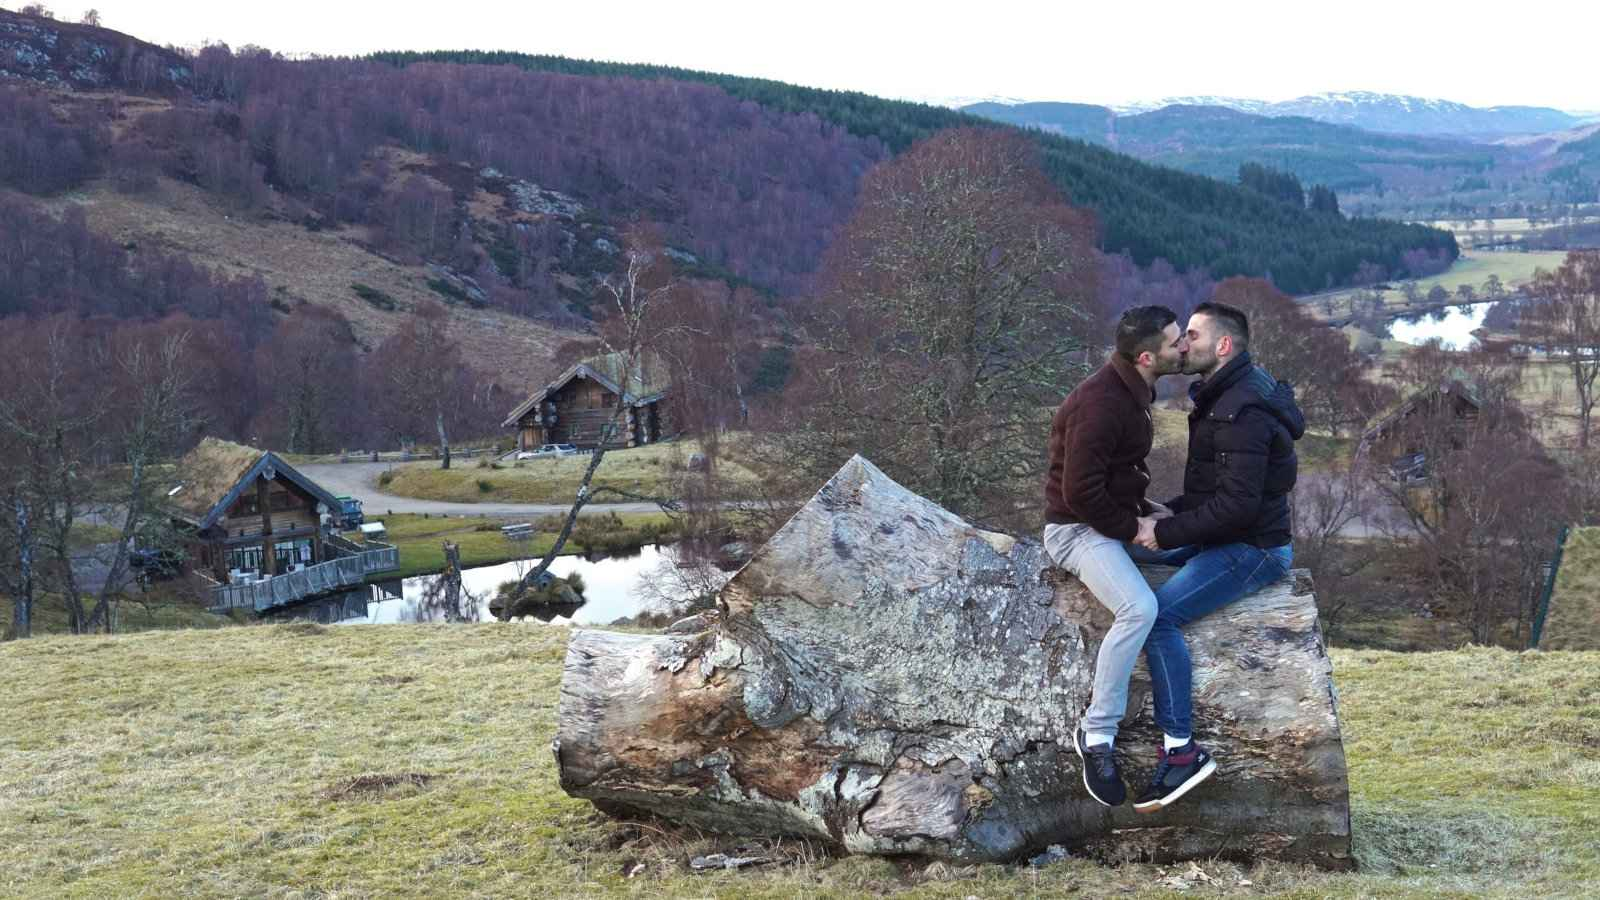 The Scottish Highlands are a beautiful and romantic place for gay travellers to visit